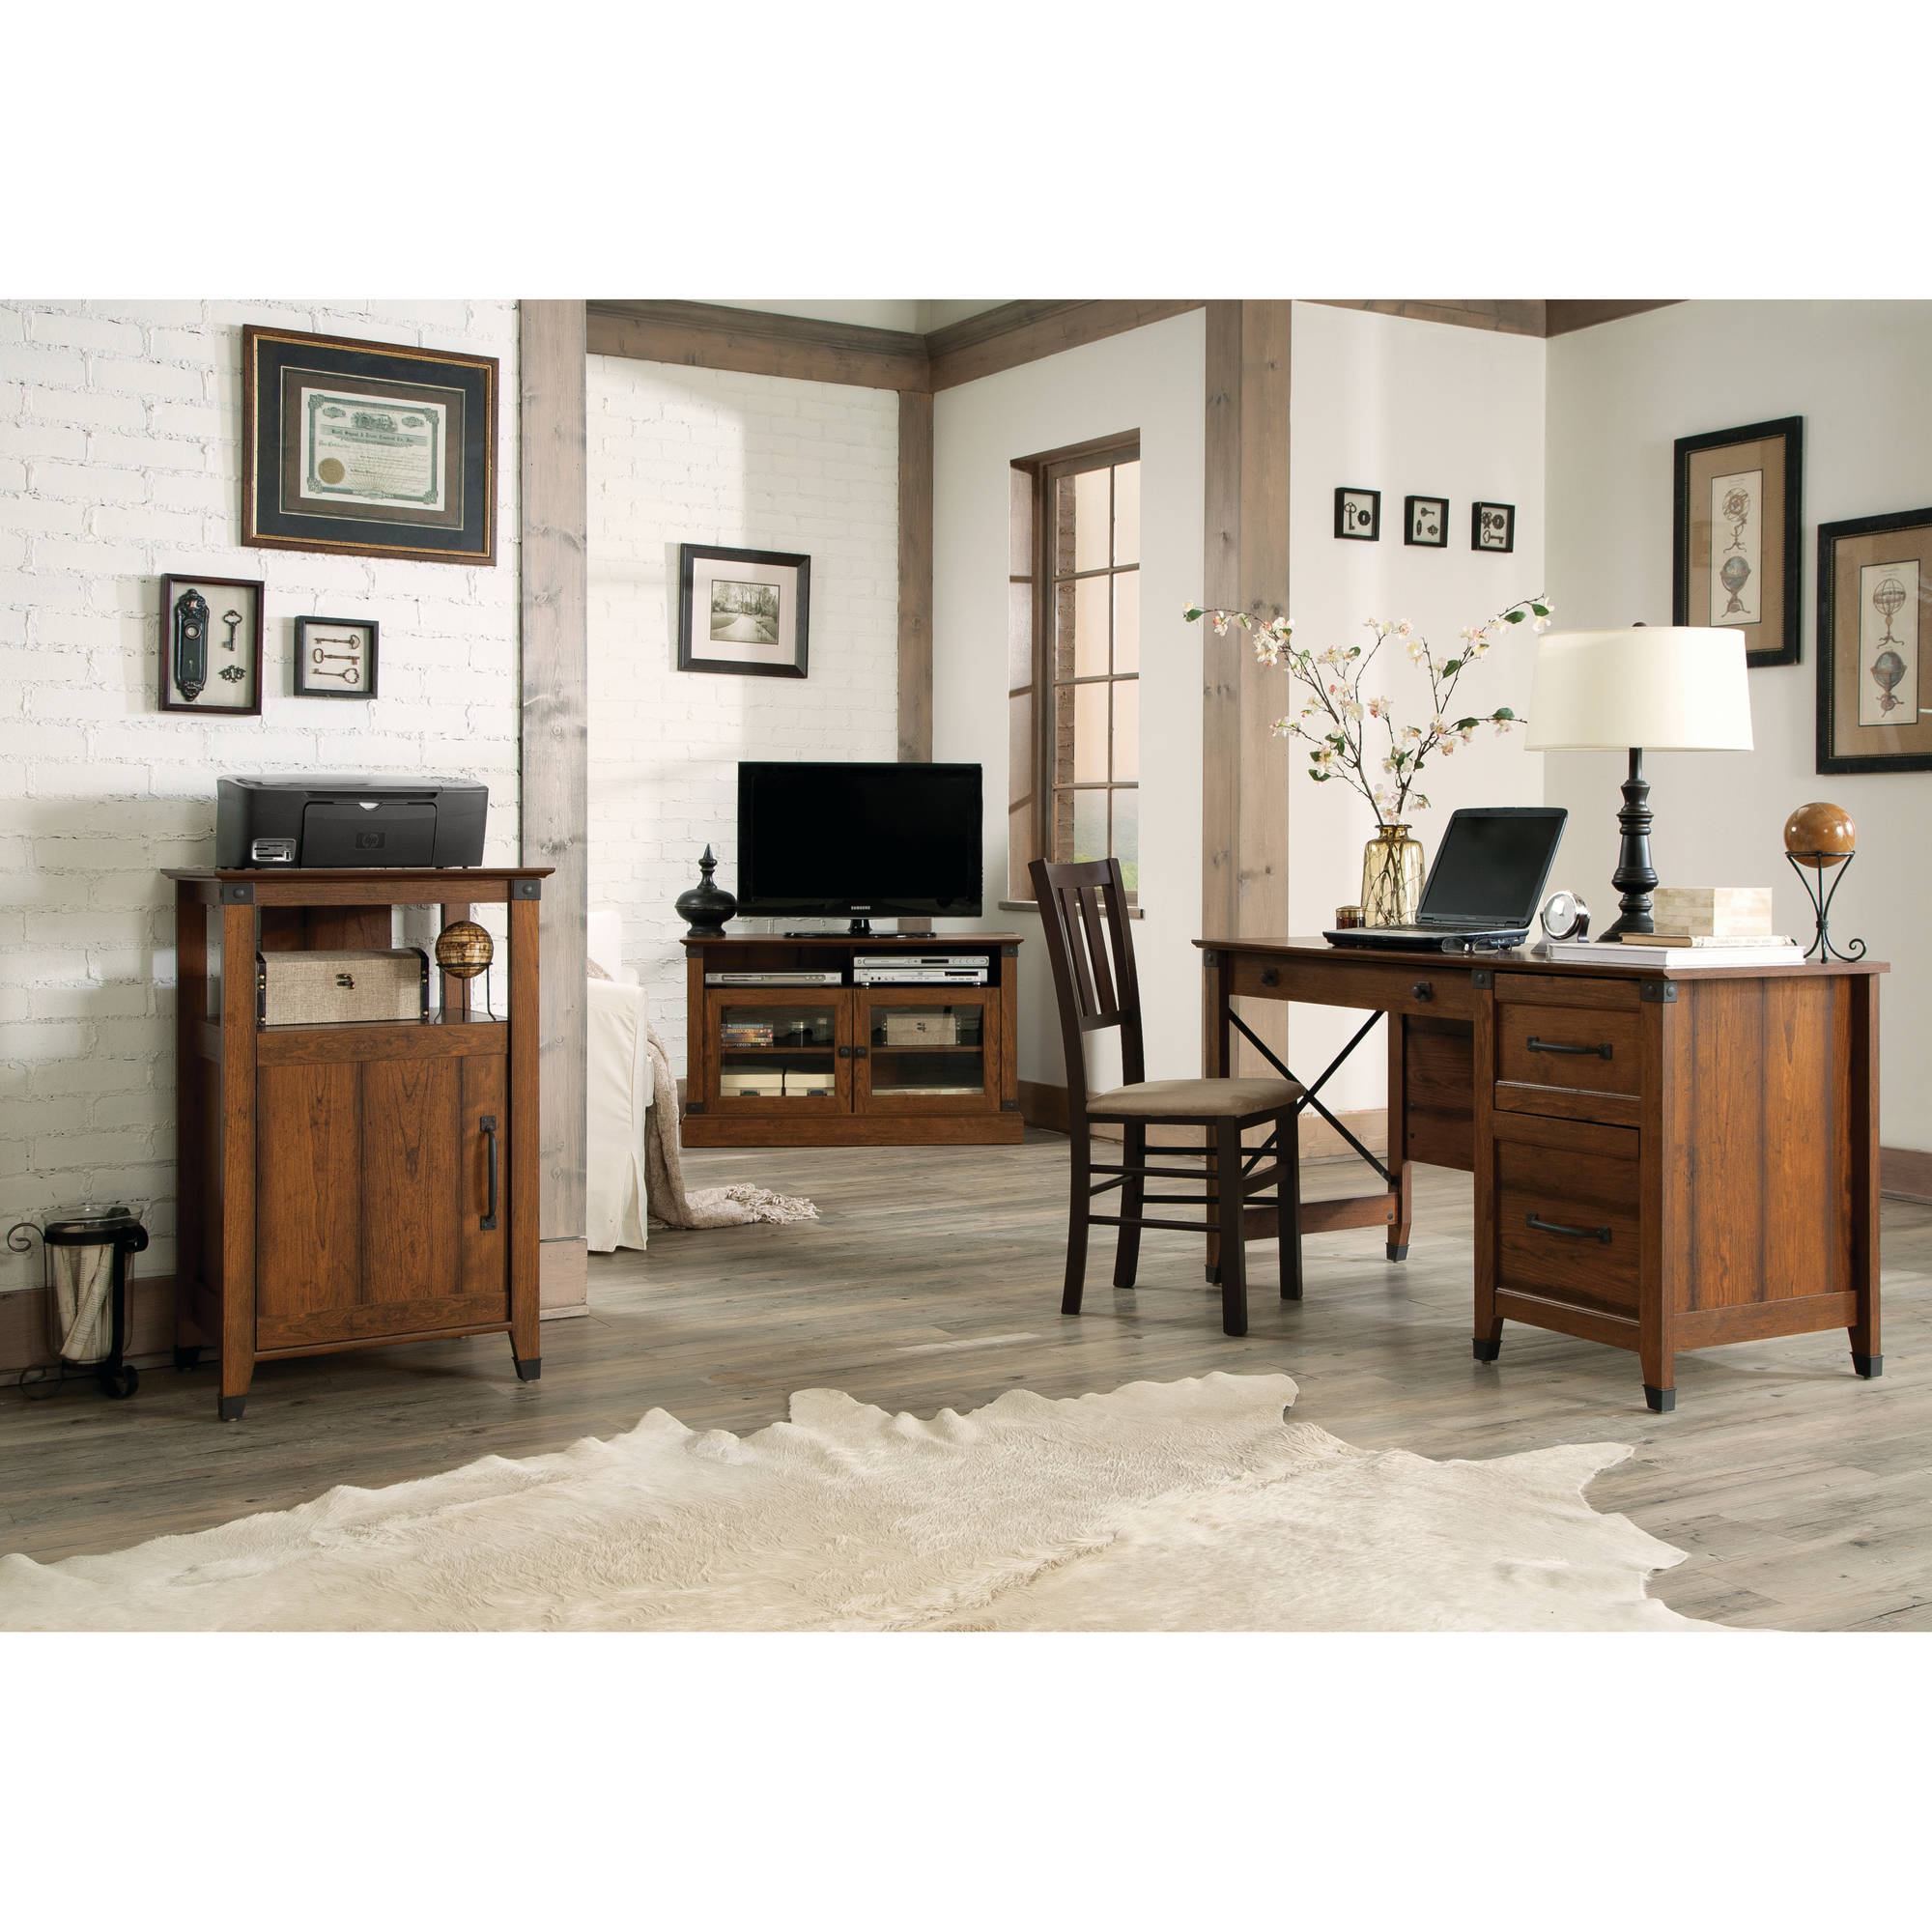 Sauder Carson Forge Office Furniture Collection